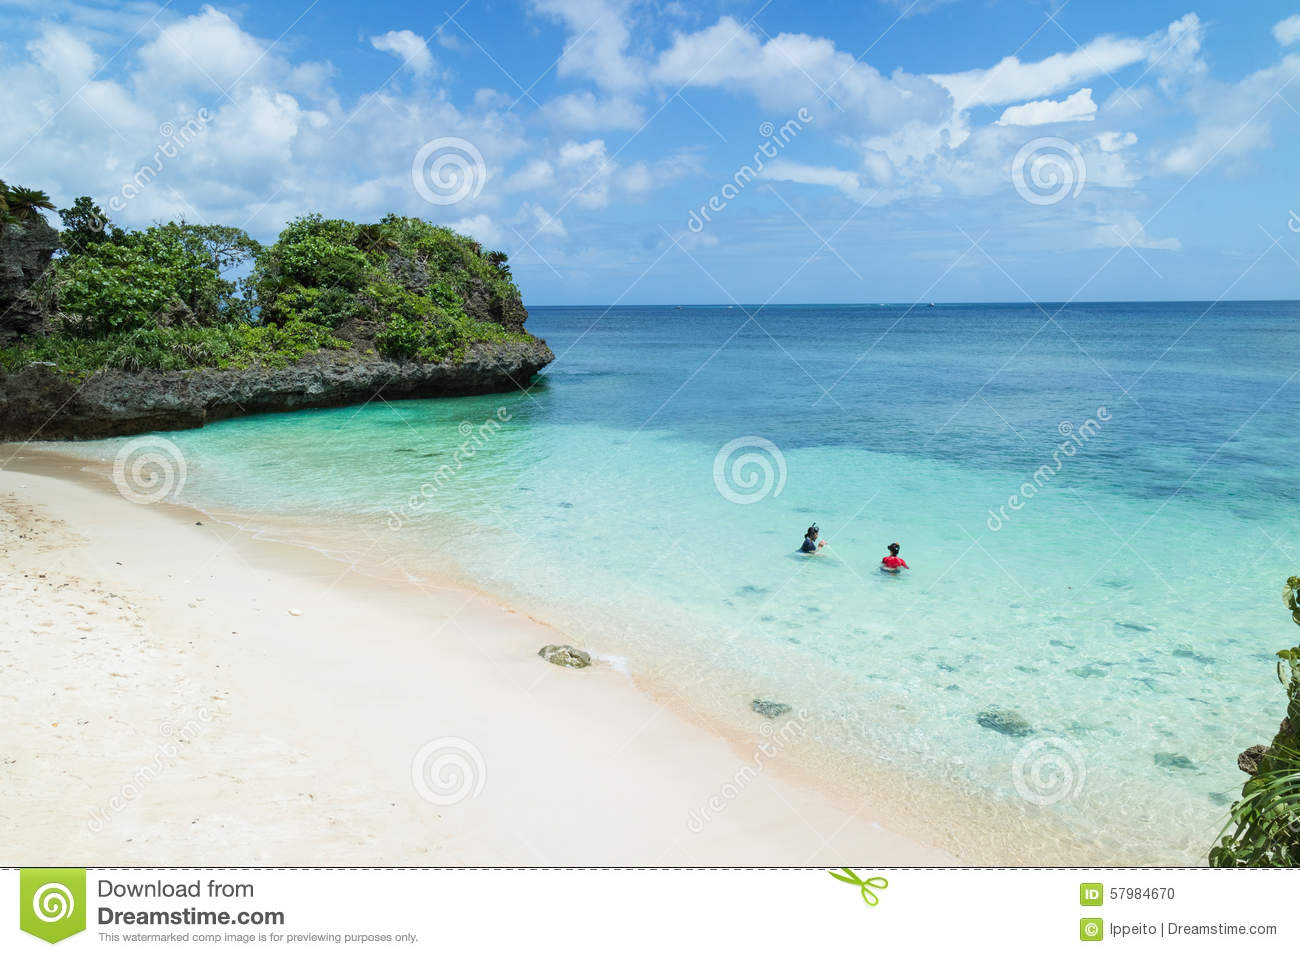 People Snorkeling In Clear Turquoise Water Of A Secluded Tropical Beach Okinawa Japan